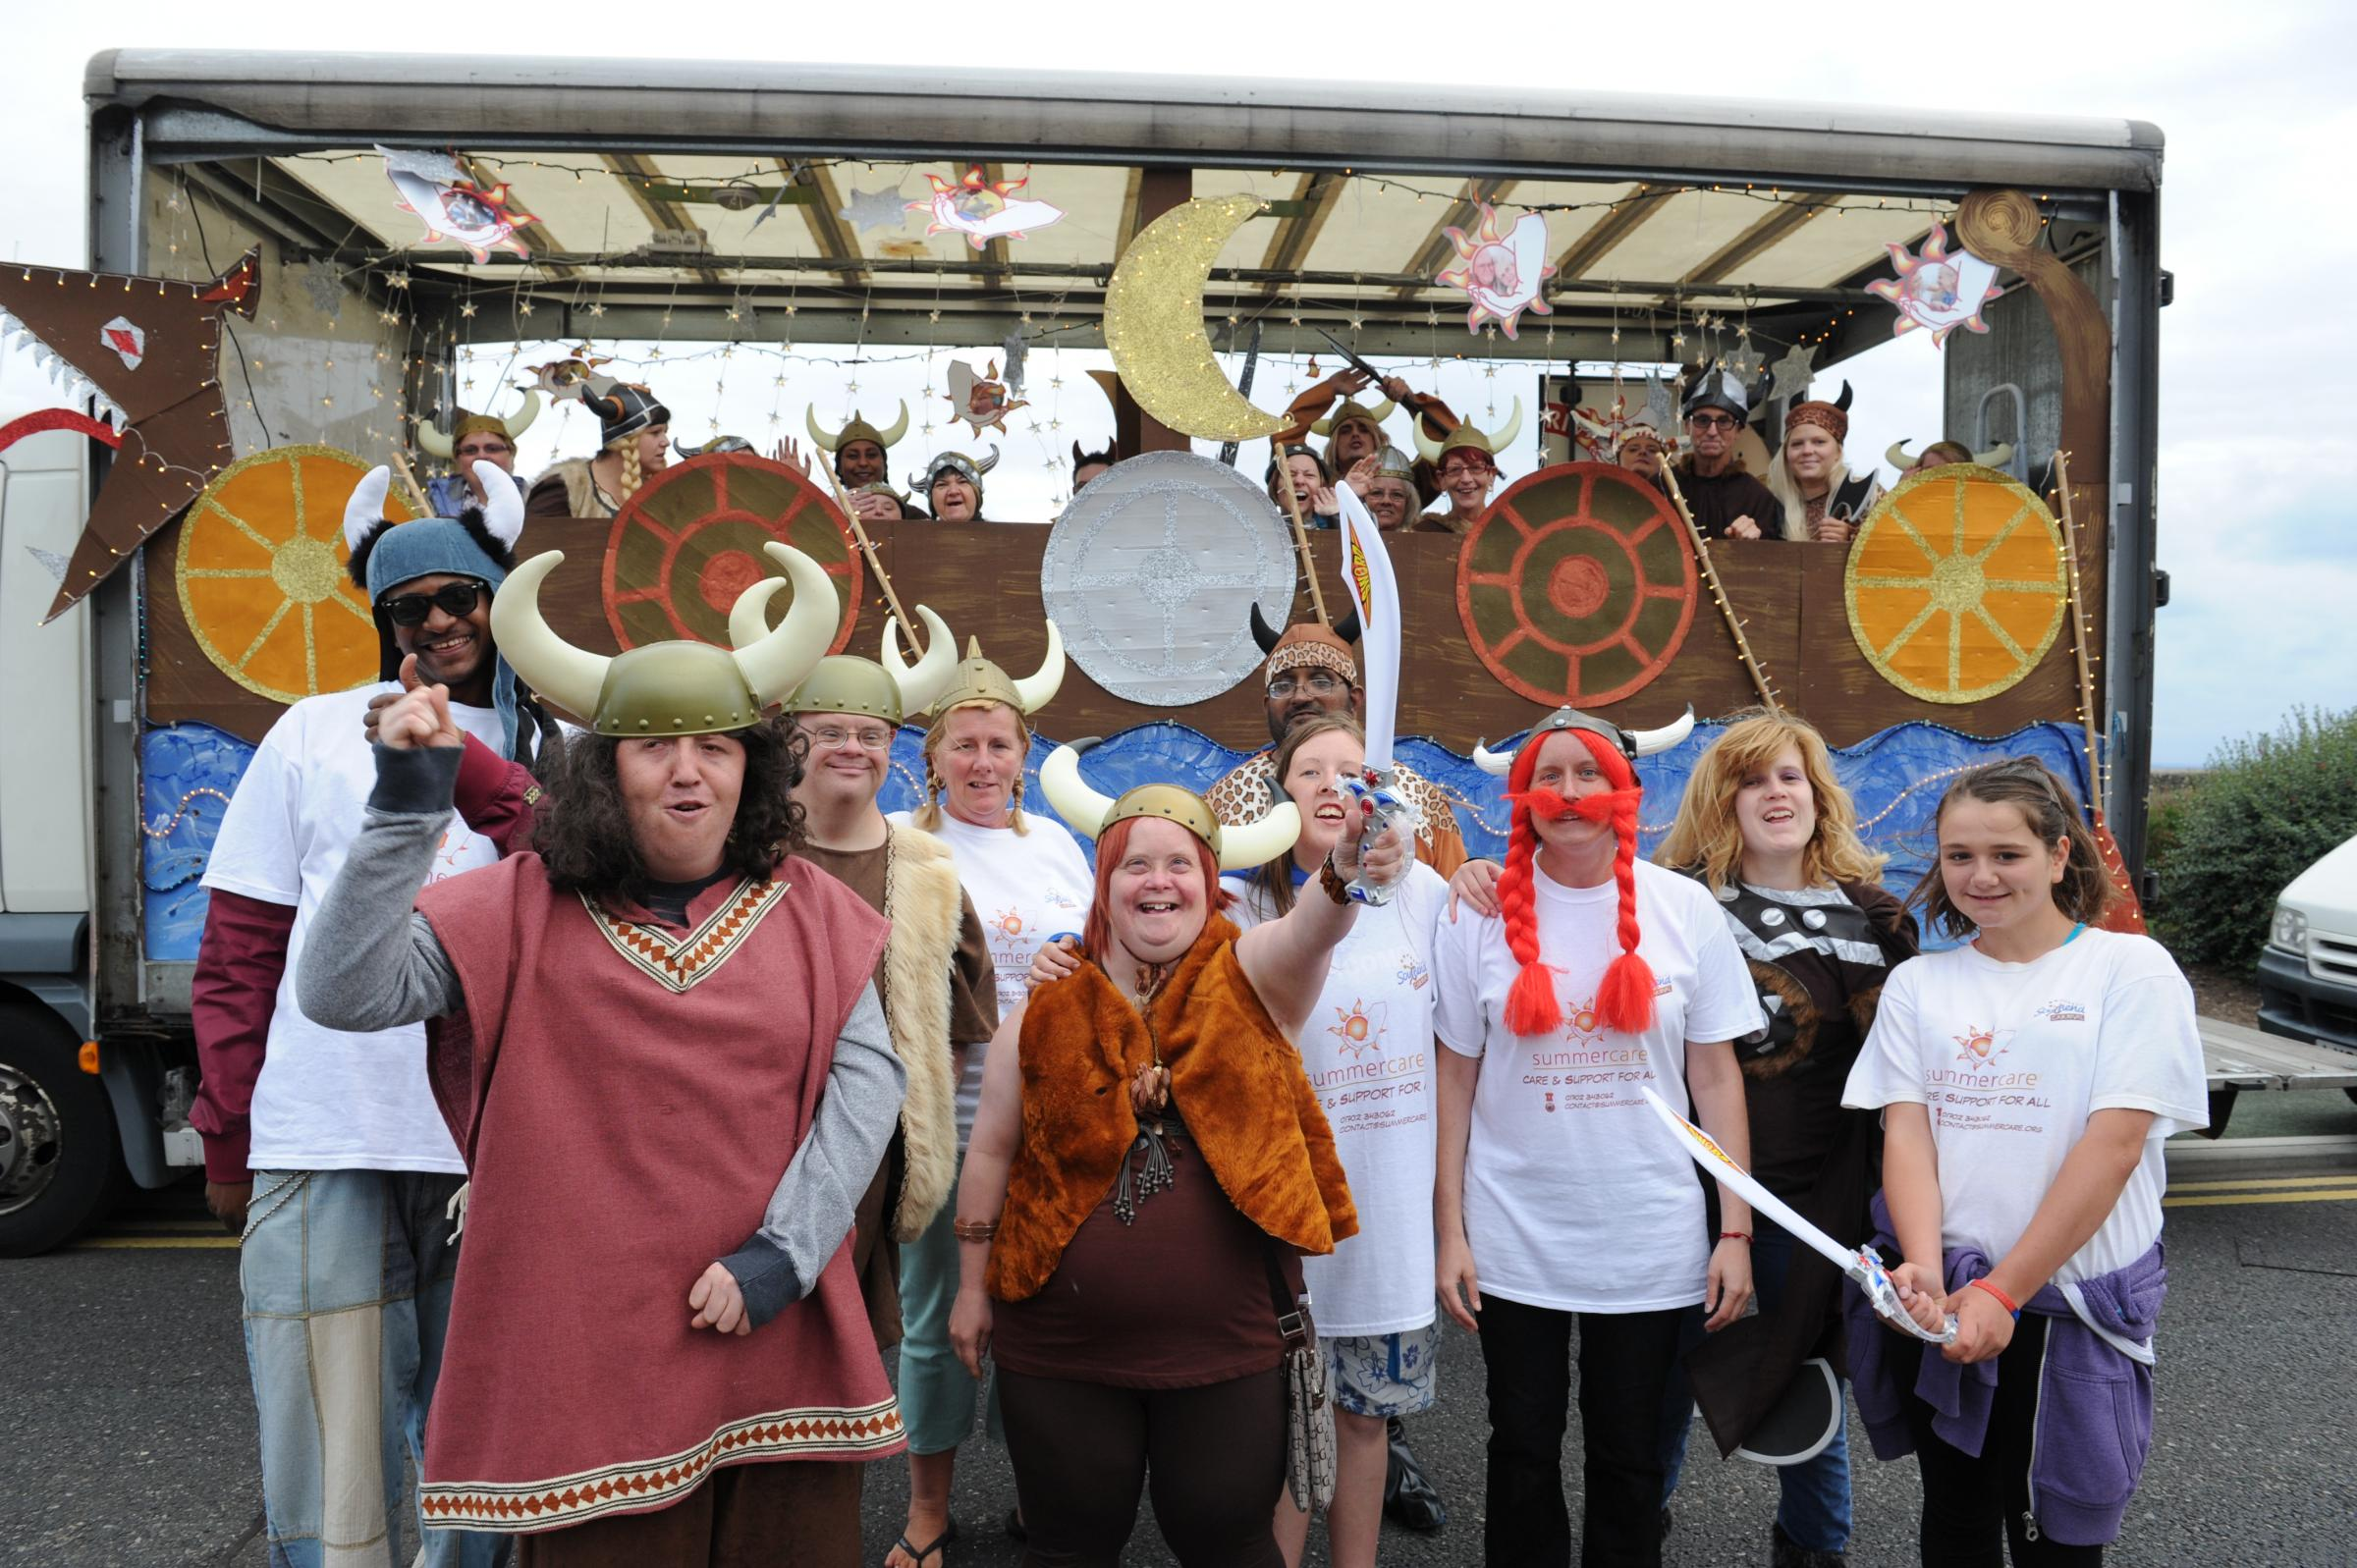 Southend Carnival Procession: What's on where and when